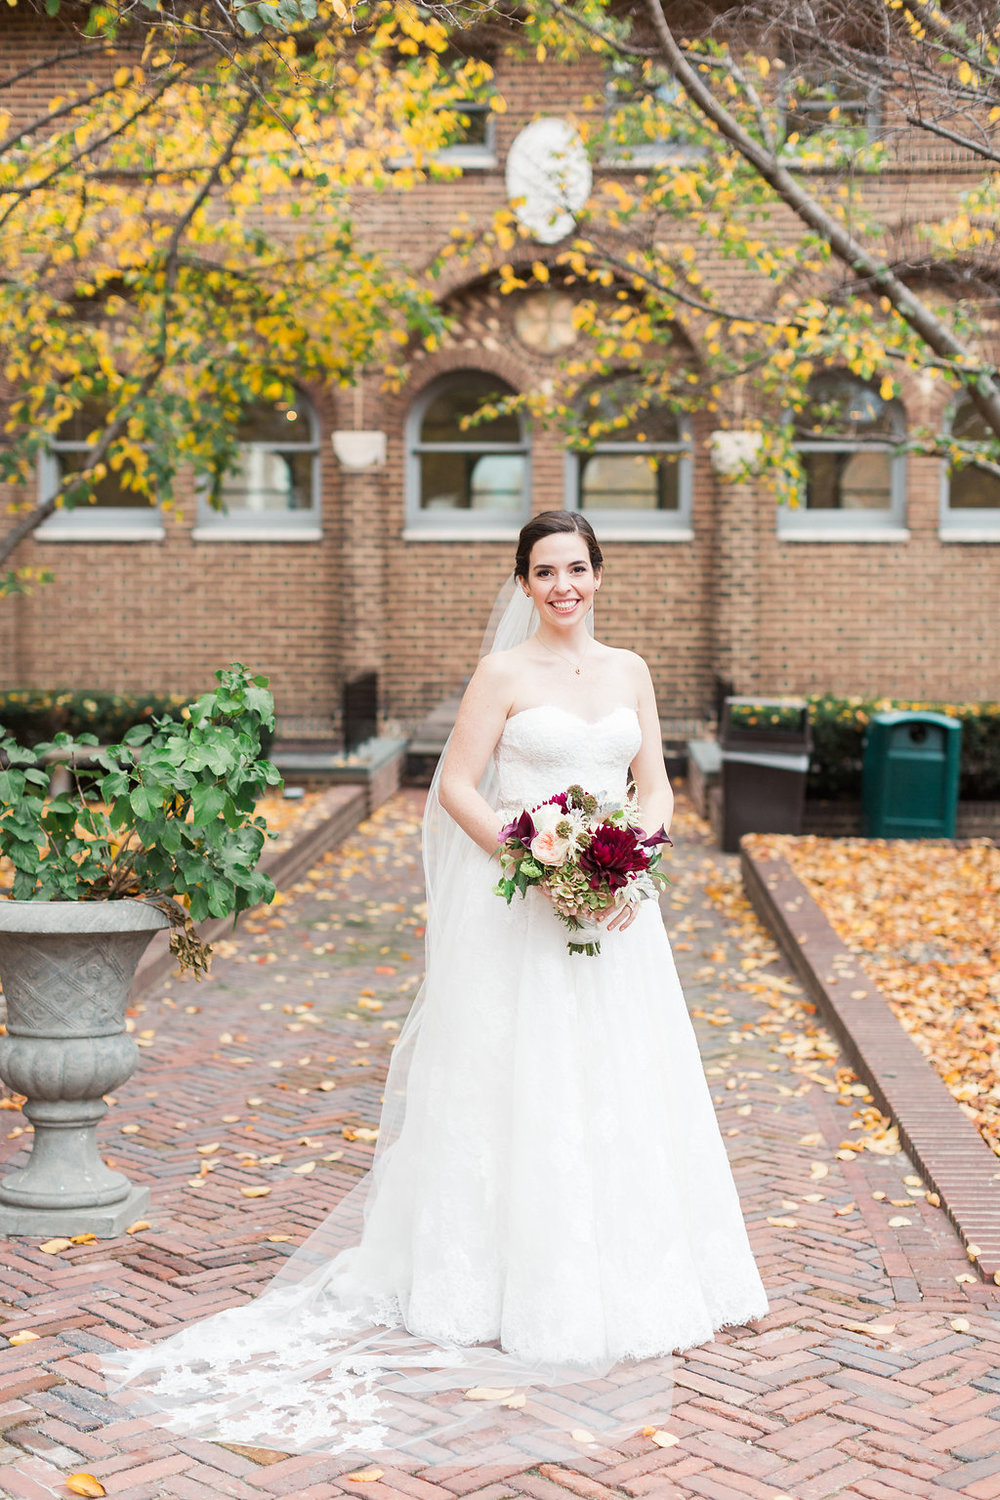 Elizabeth wore a stunning Monique Lhuillier gown from The Wedding Shoppe. Her bouquet from Evantine Design was filled with dahlias, garden roses, dusty miller, ranunculus and chocolate cosmos.